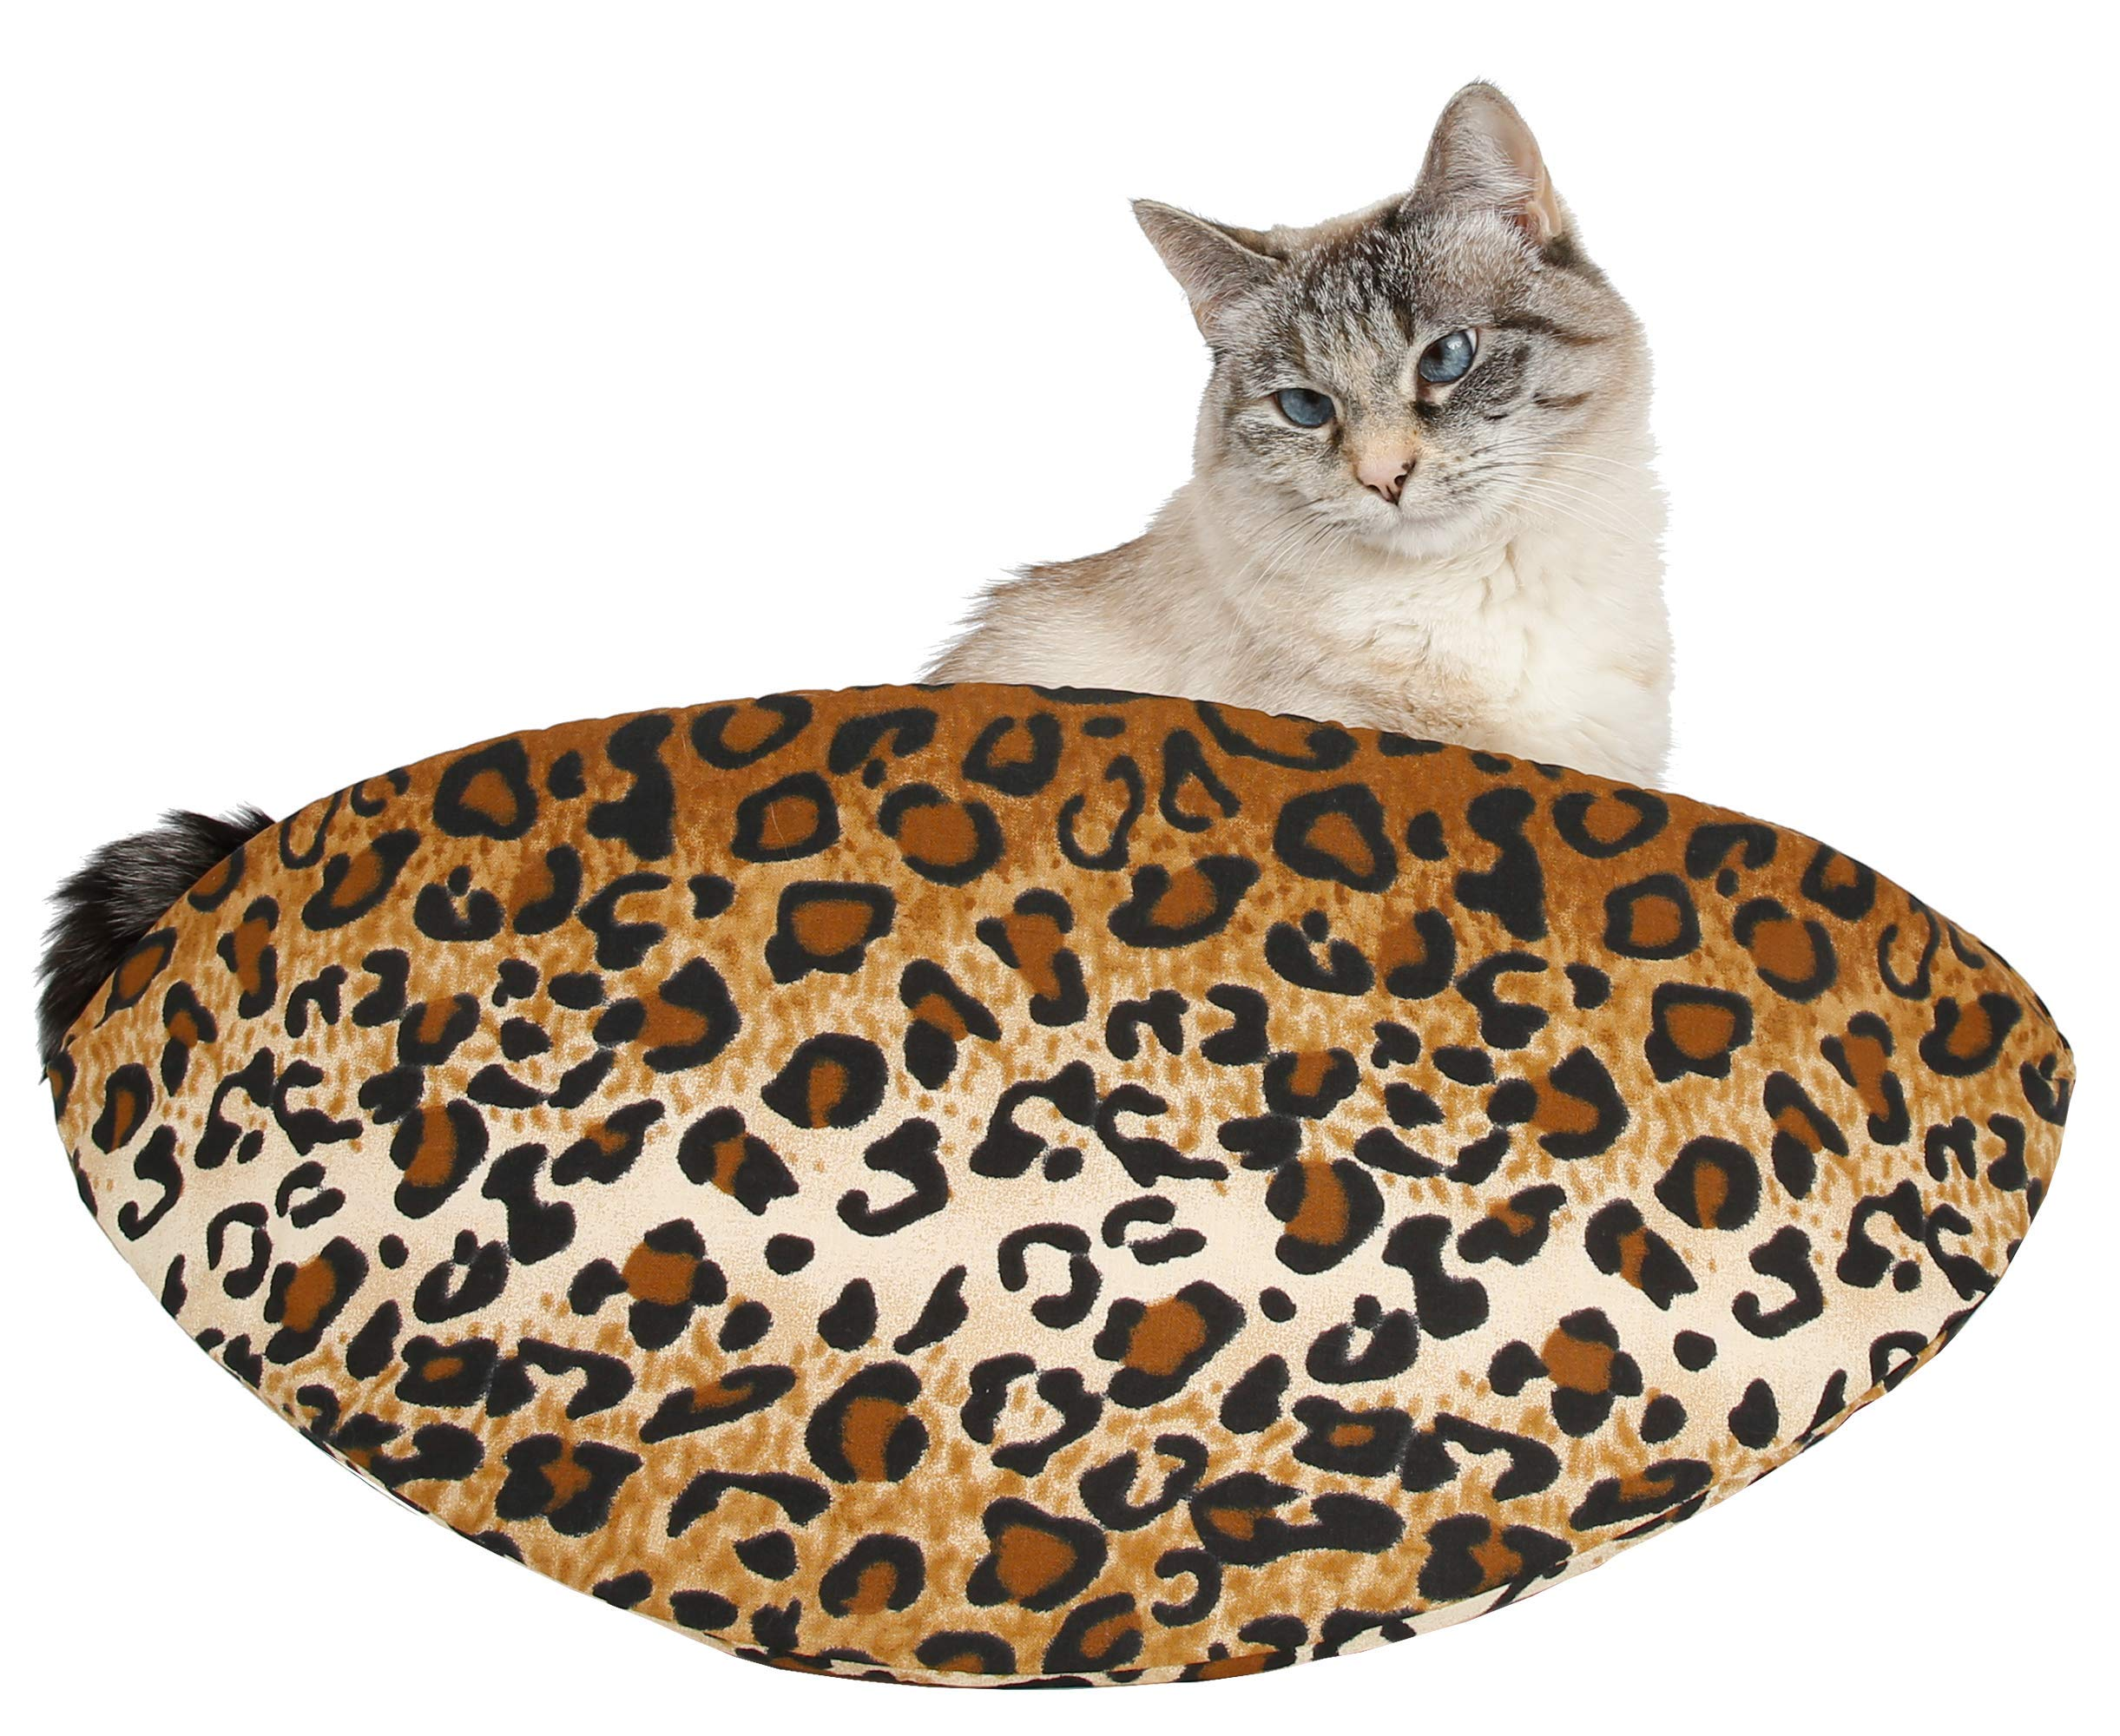 Jumbo Cat Canoe - Modern Bed for Big Cats